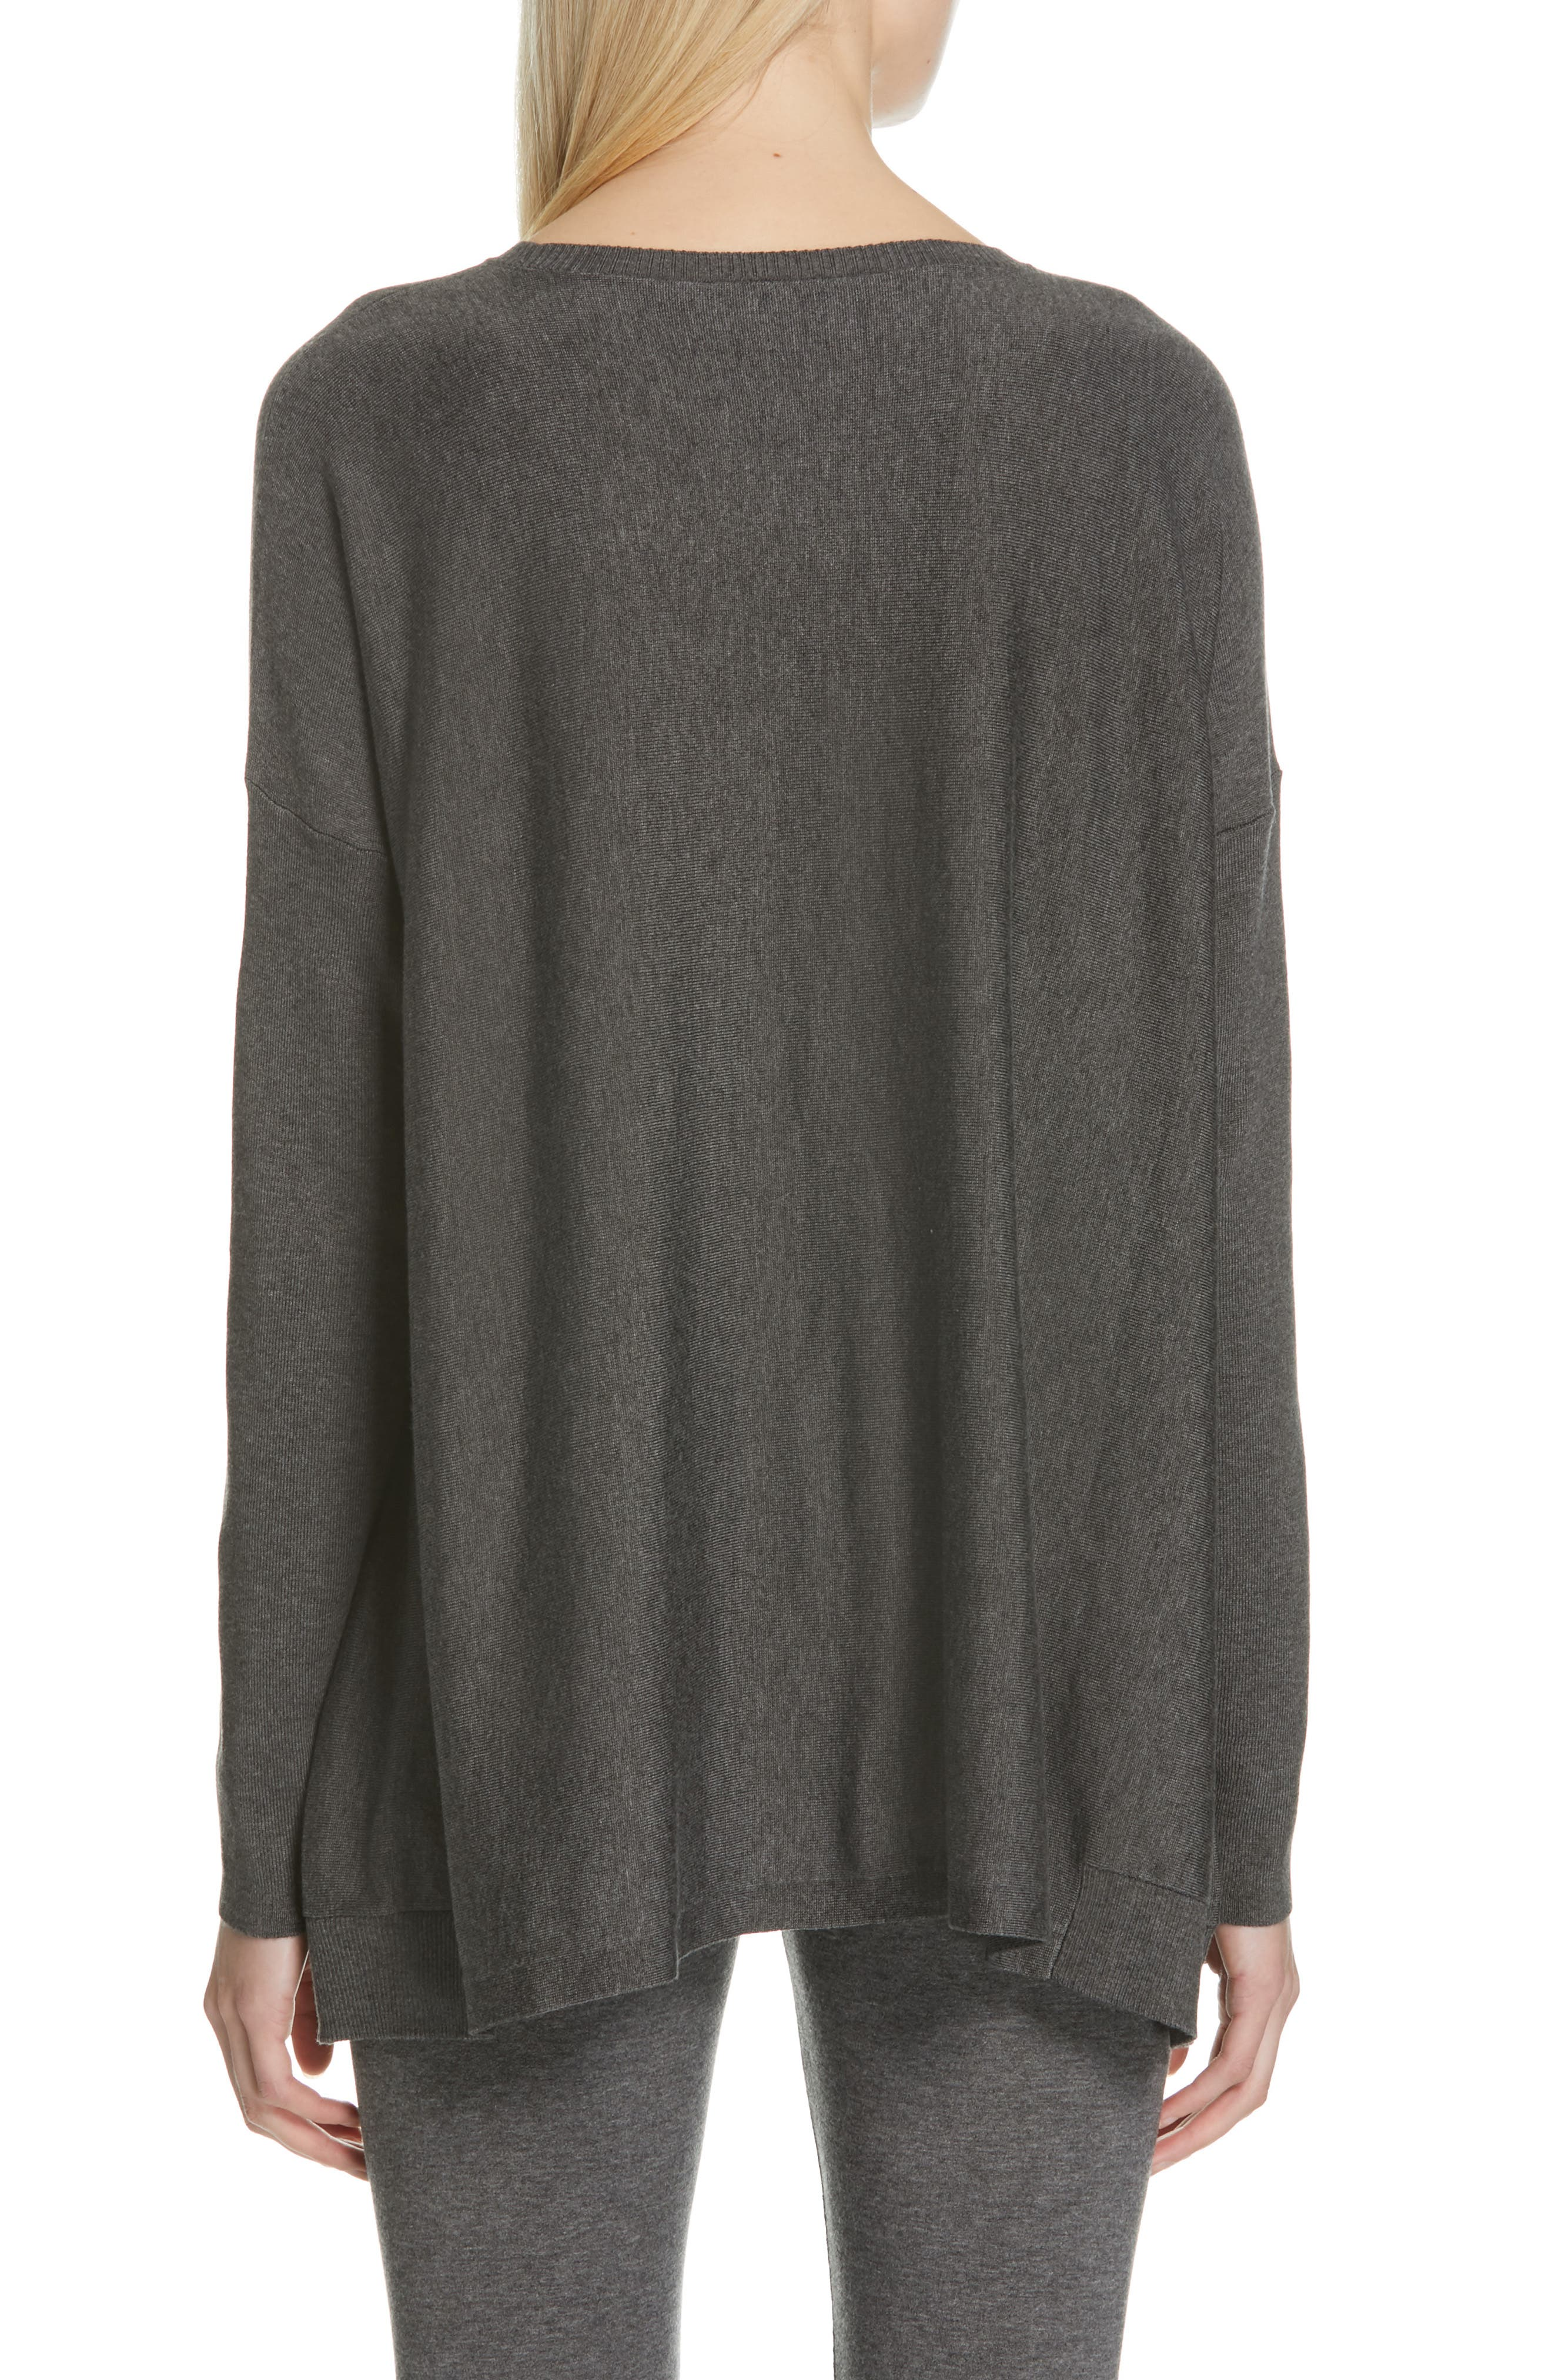 EILEEN FISHER, Tencel<sup>®</sup> Lyocell Blend Sweater, Alternate thumbnail 2, color, 030